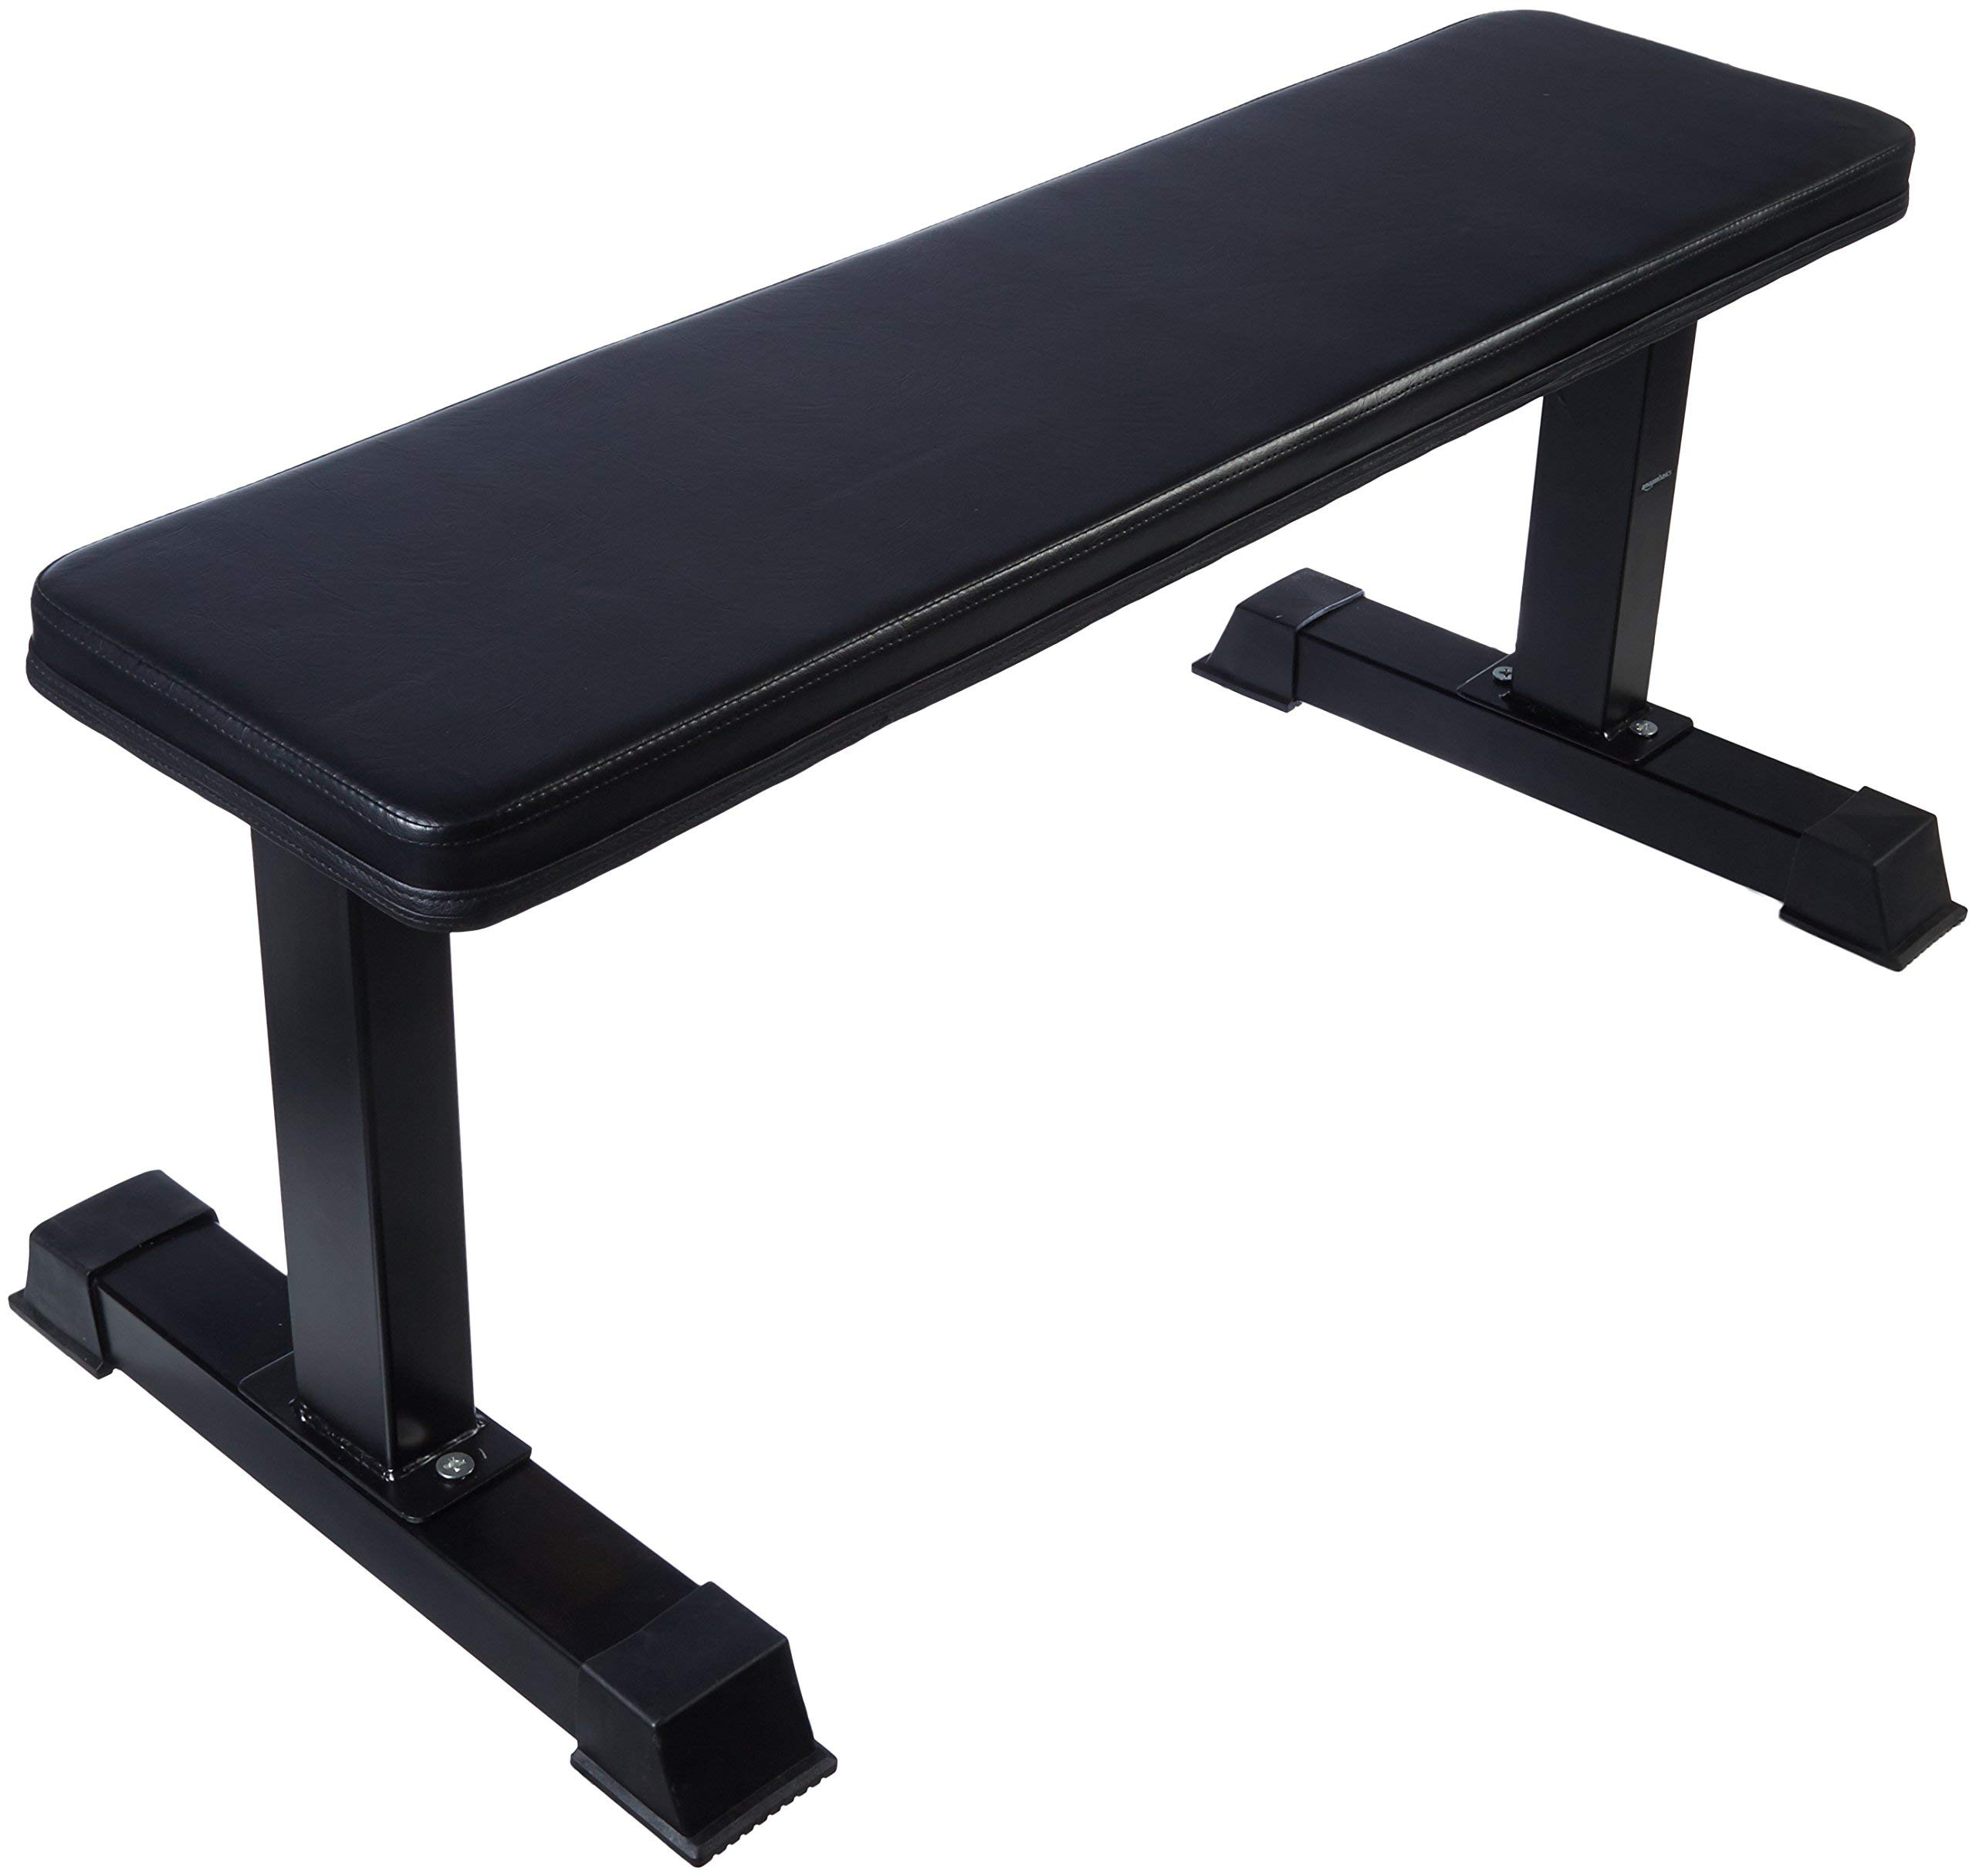 AmazonBasics Flat Weight Bench (Renewed) by AmazonBasics